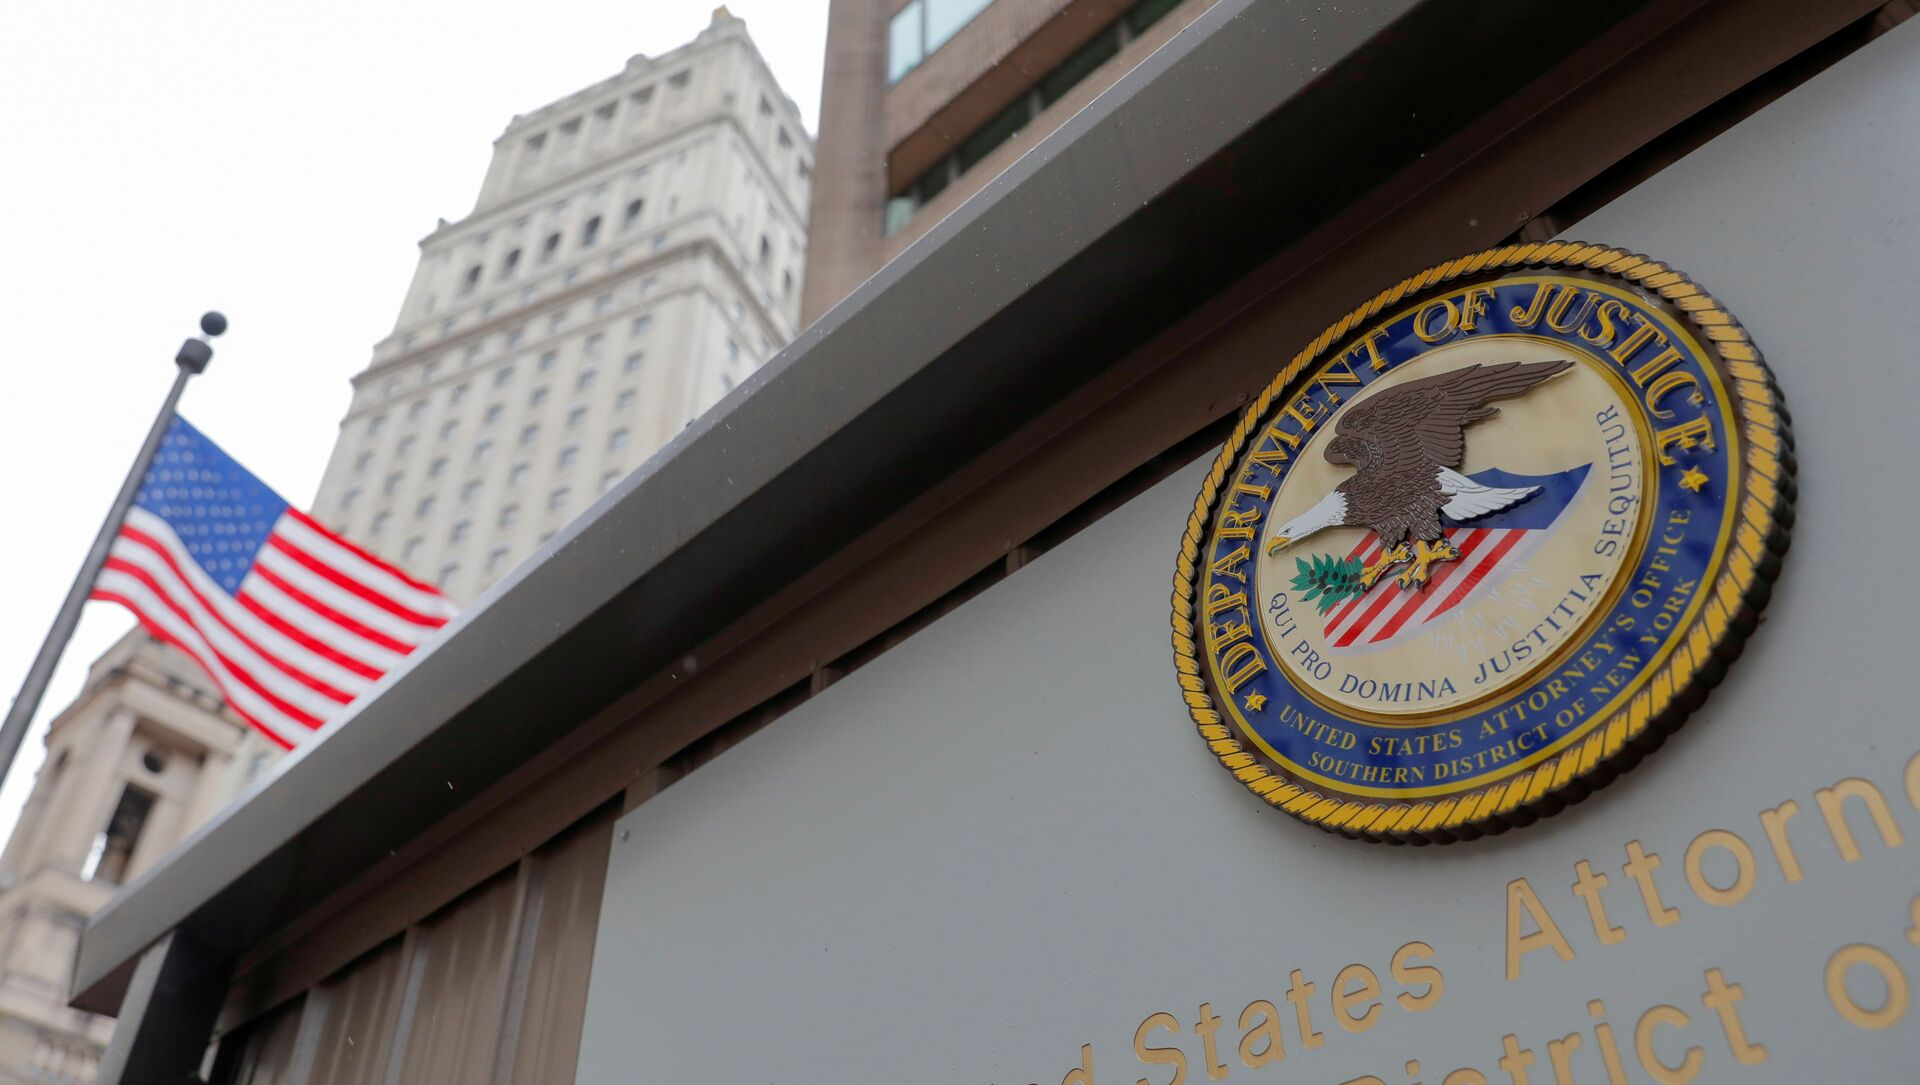 The seal of the United States Department of Justice is seen on the building exterior of the United States Attorney's Office of the Southern District of New York in Manhattan, New York City, U.S., August 17, 2020. - Sputnik International, 1920, 03.08.2021